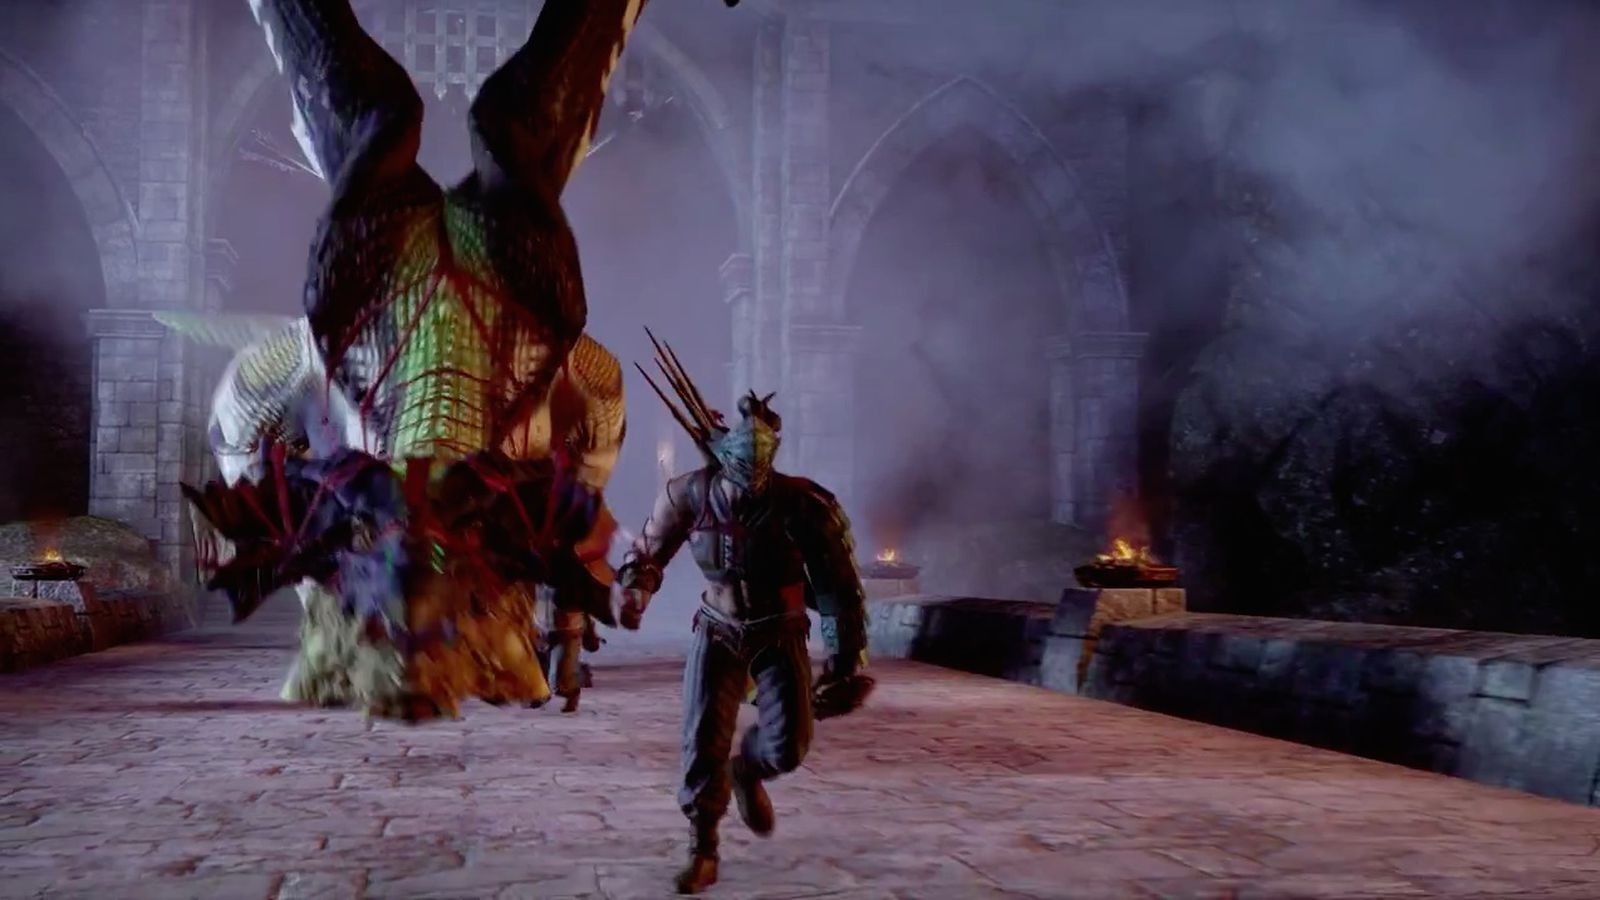 Watch the trailer for Dragon Age: Inquisition's final